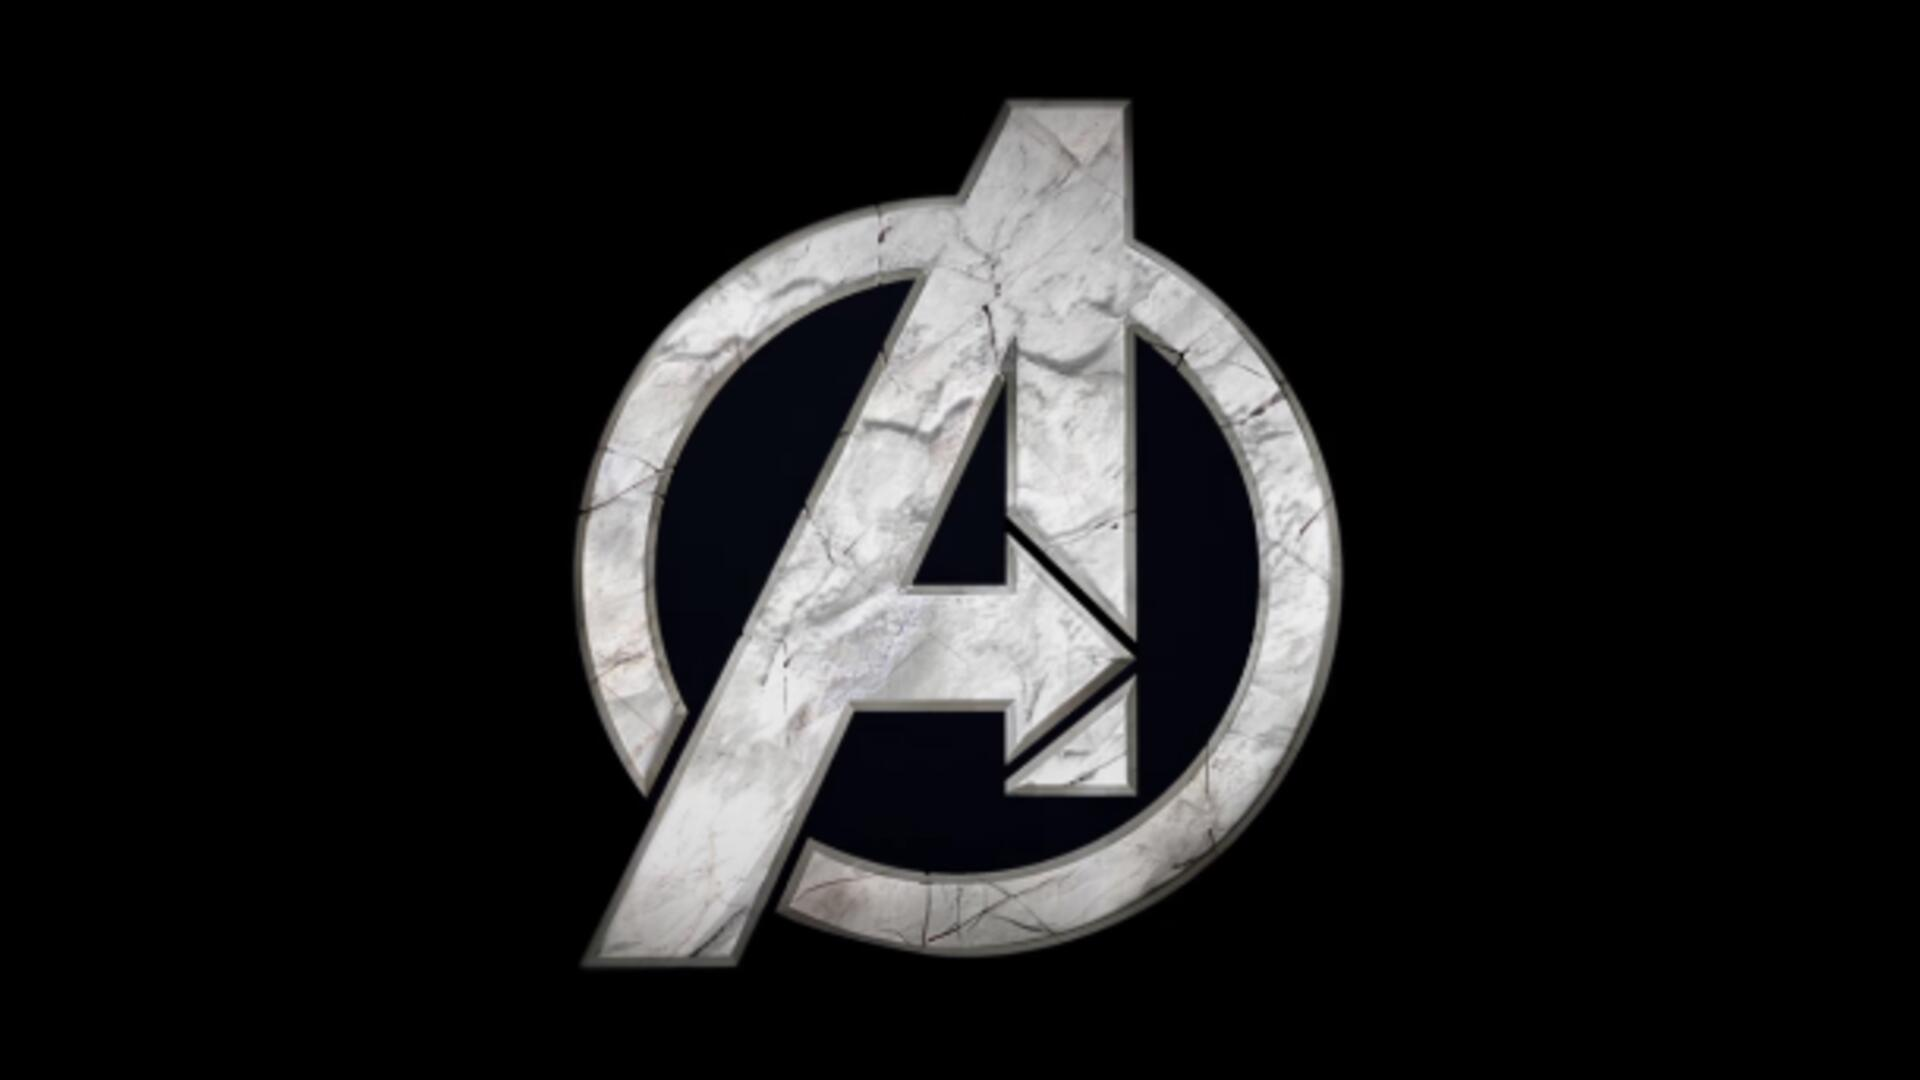 Avengers Project Marks Collaboration Between Marvel and Square Enix